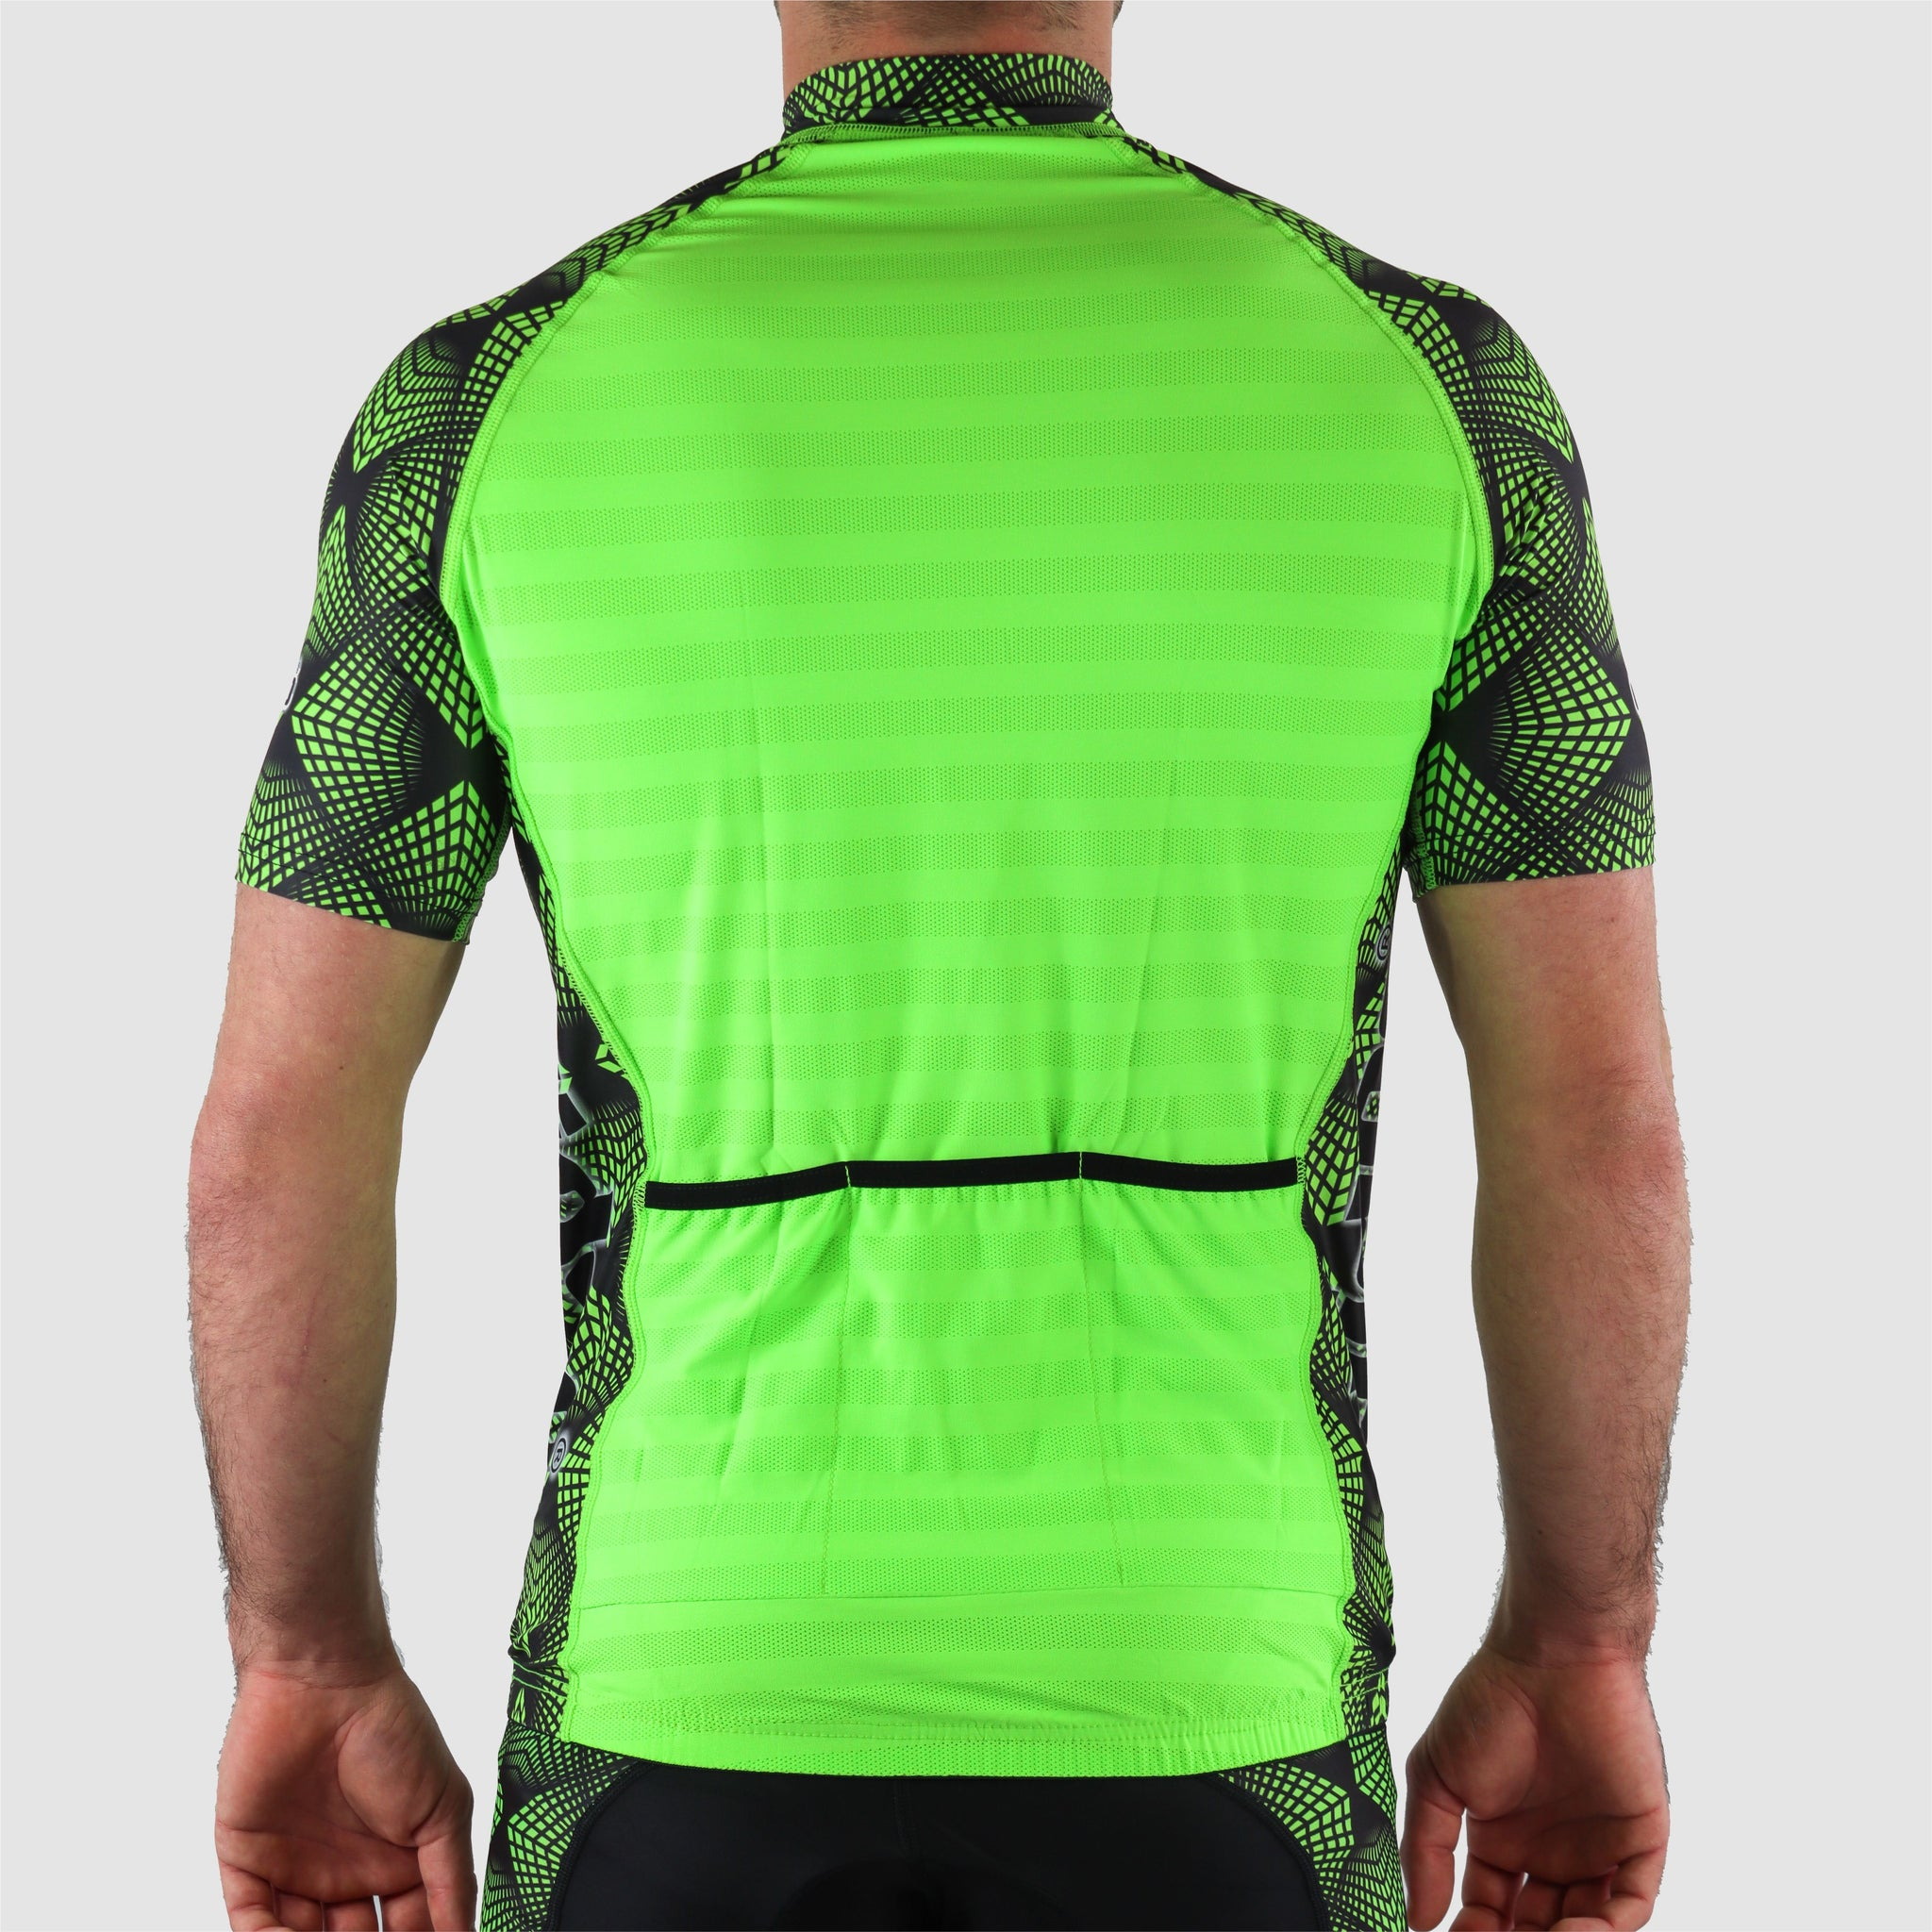 DiDOO Men's Lightweight Half Zip Multi Pockets Short Sleeve Cycling Jersey Fluorescent Green